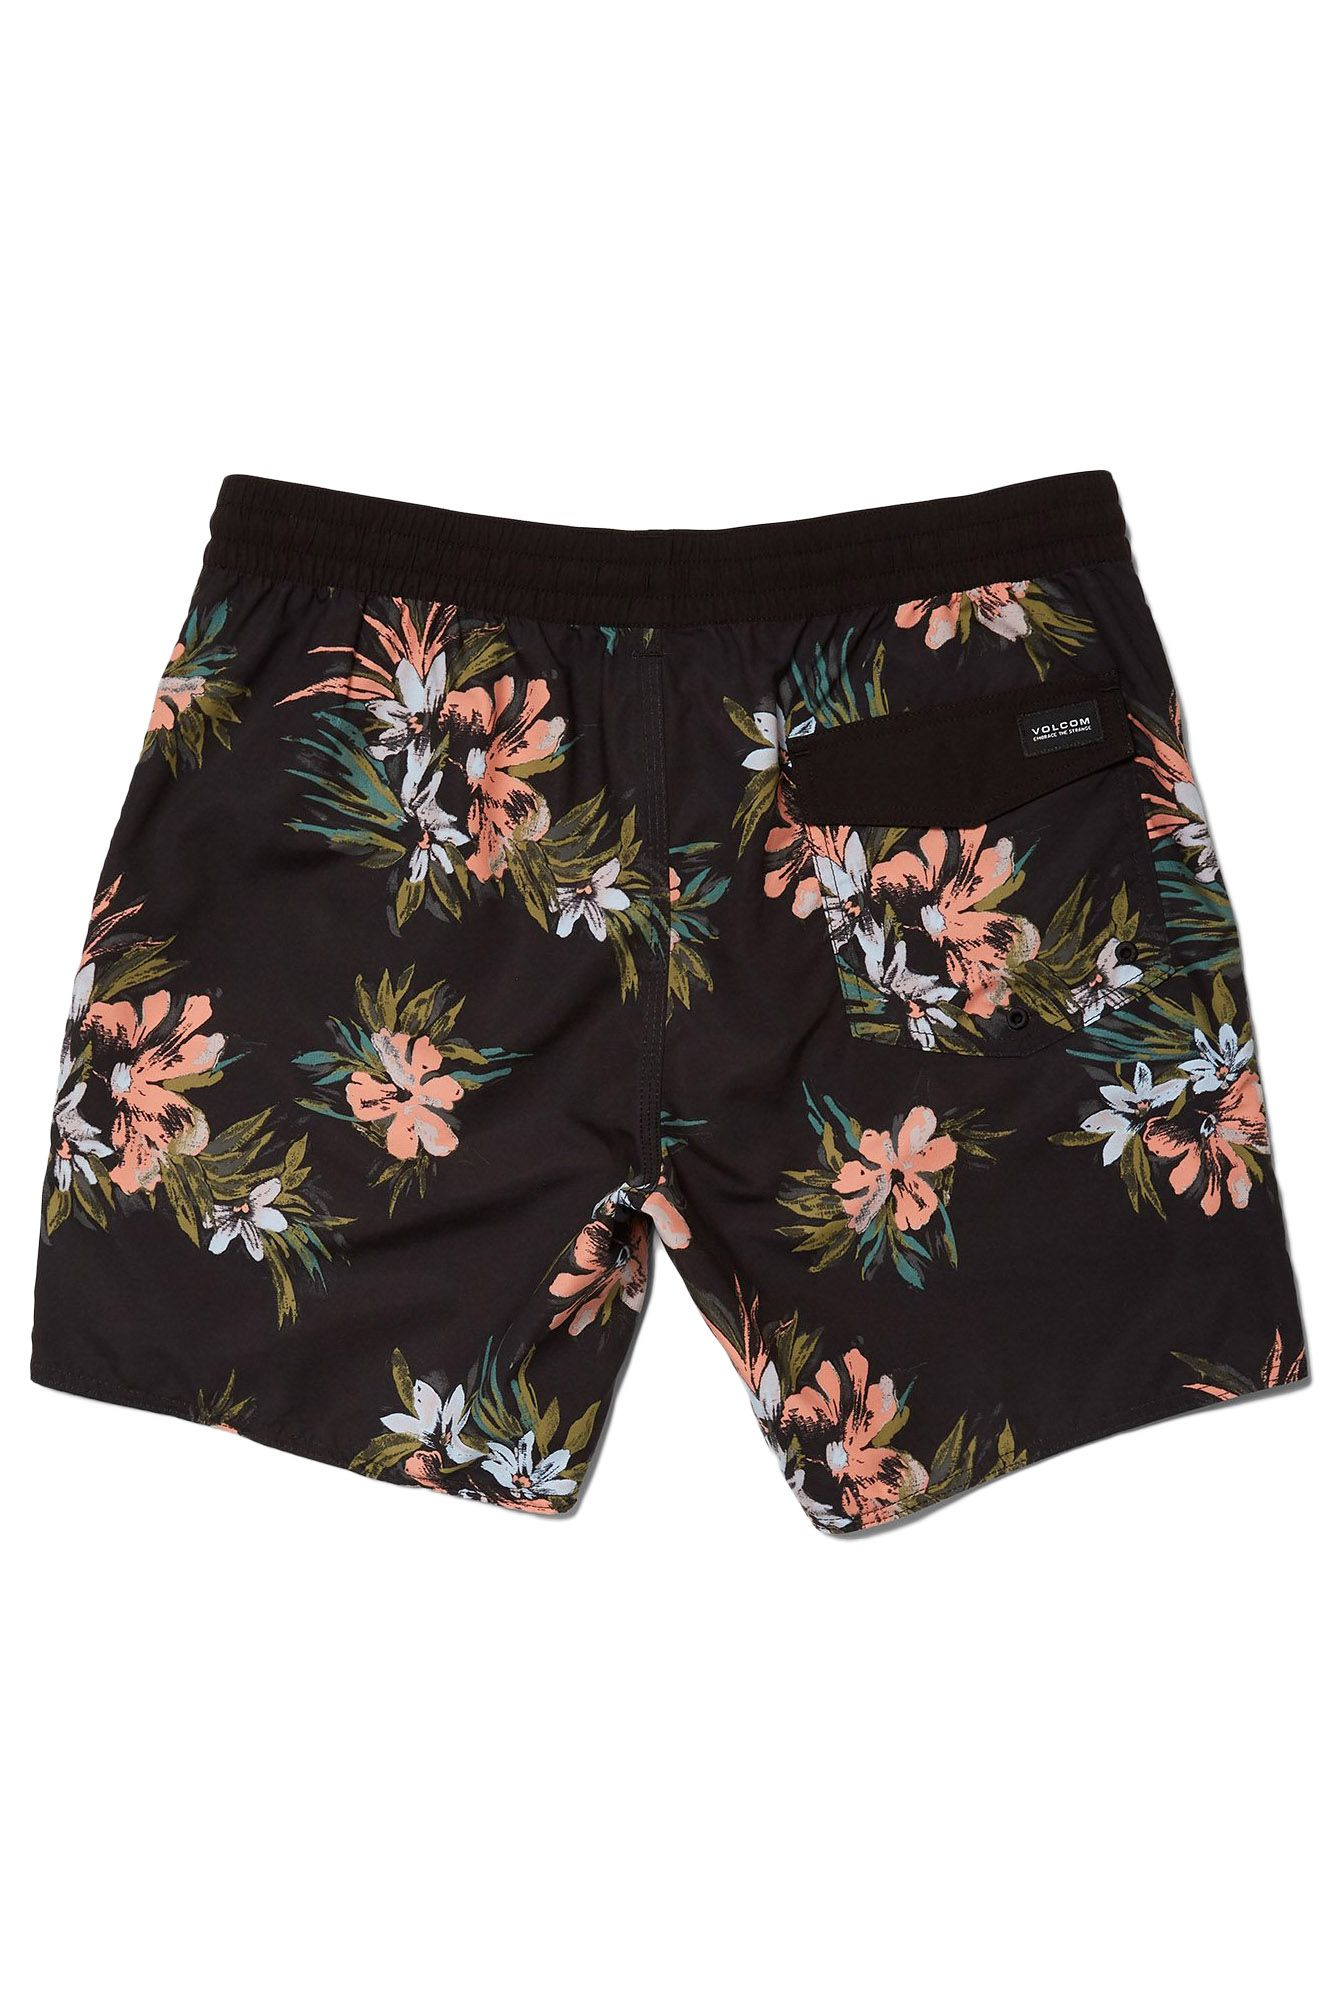 Volleys Volcom EARTHLY DELIGHT TRUNK 17 Black